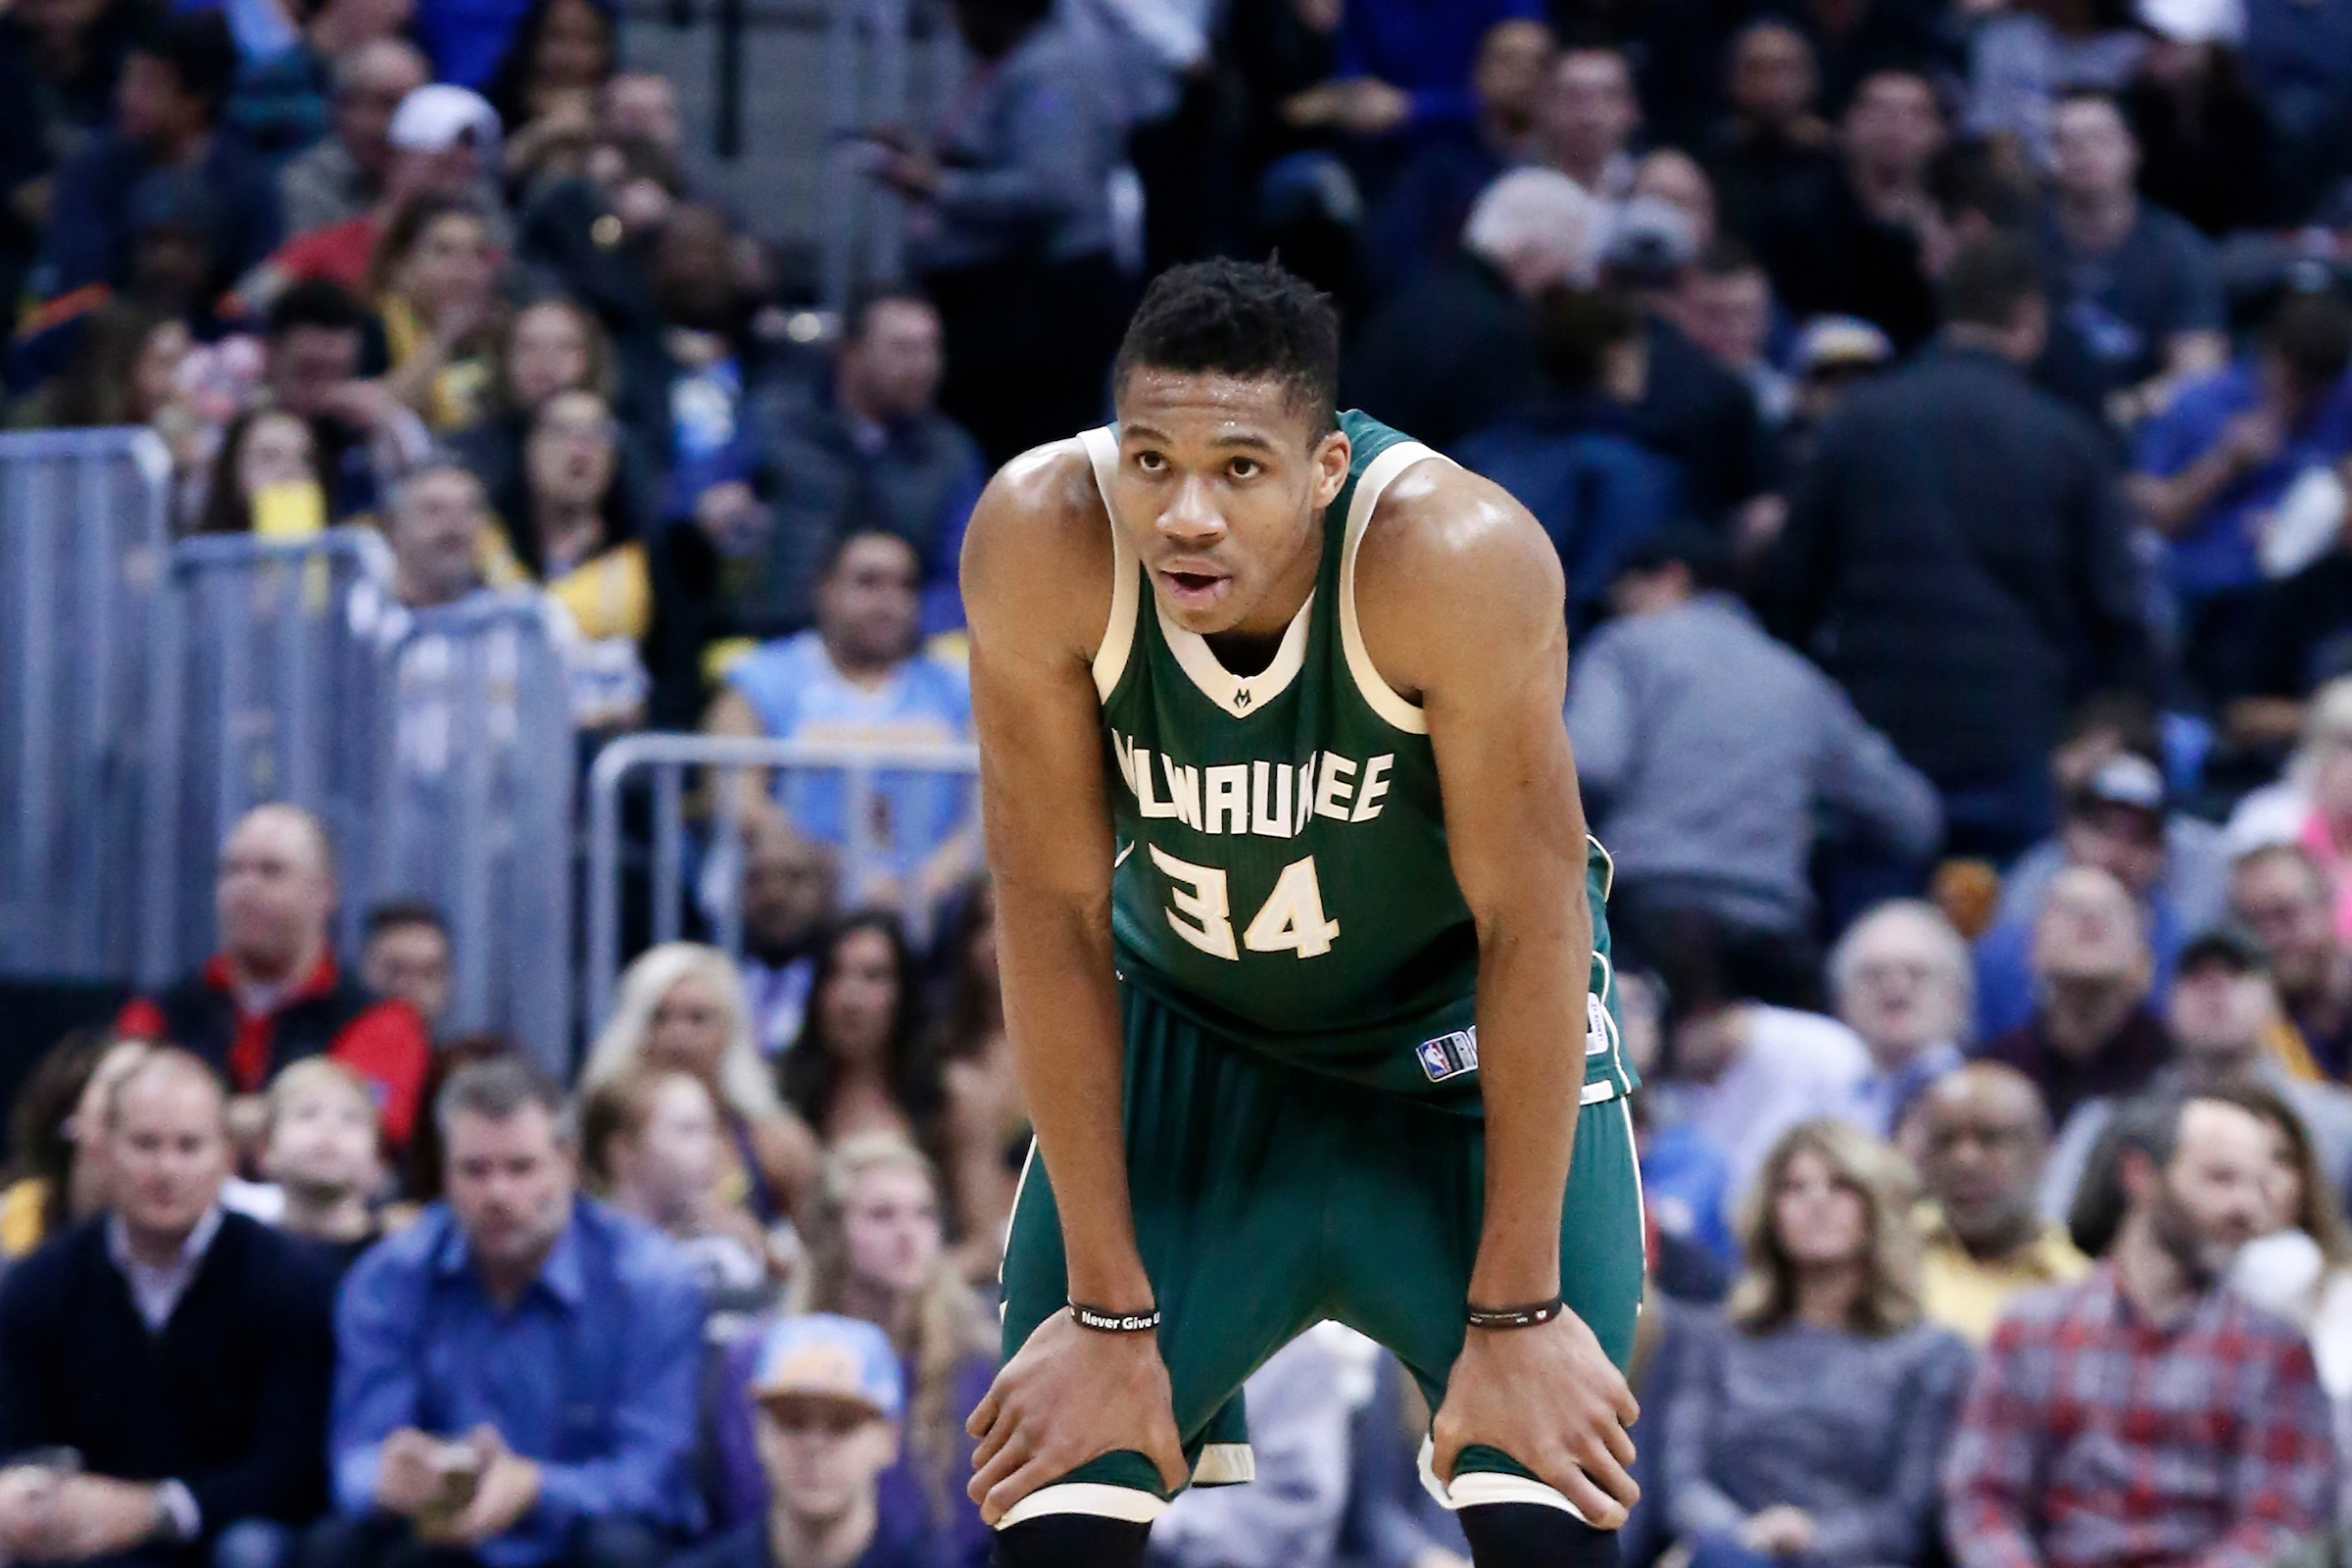 Retour perdant pour le Greek Freak